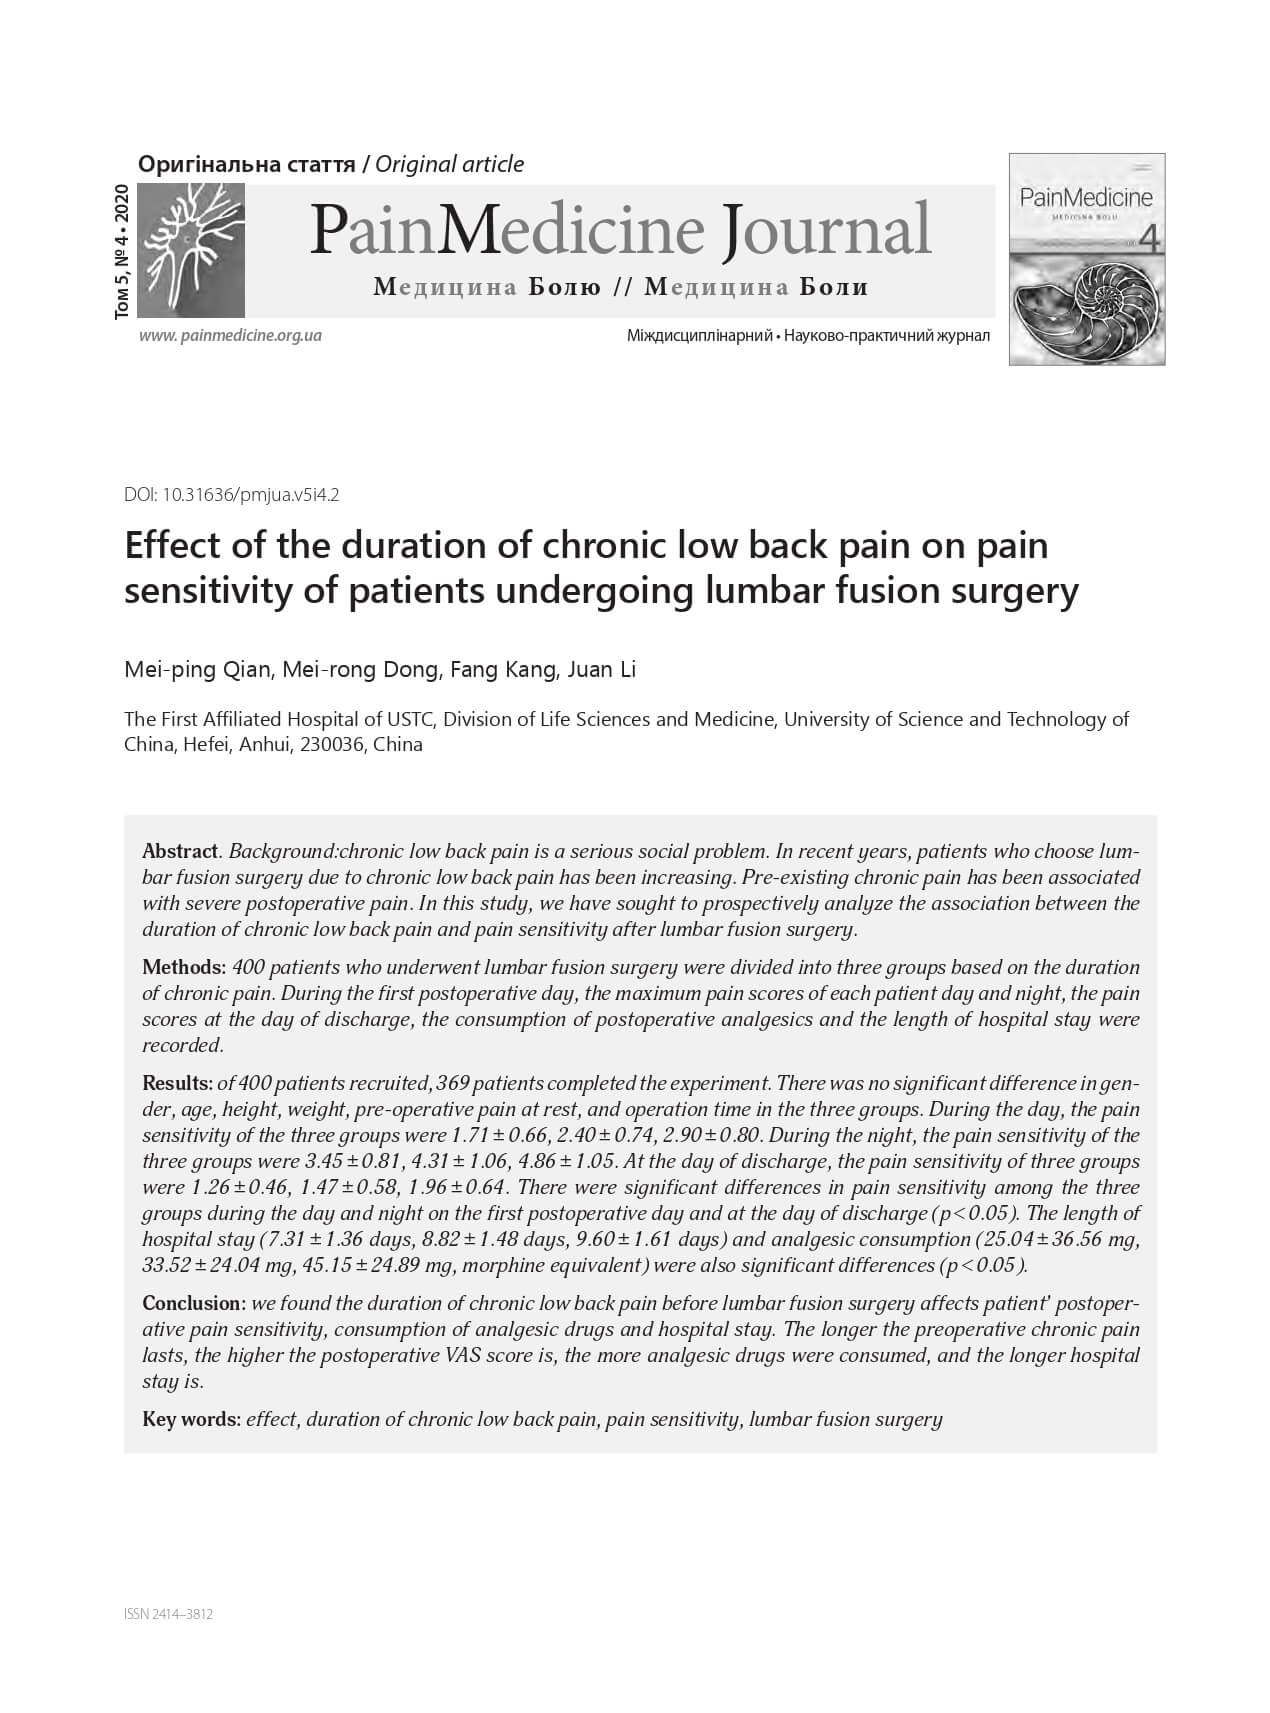 Effect of the duration of chronic low back pain on pain sensitivity of patients undergoing lumbar fusion surgery